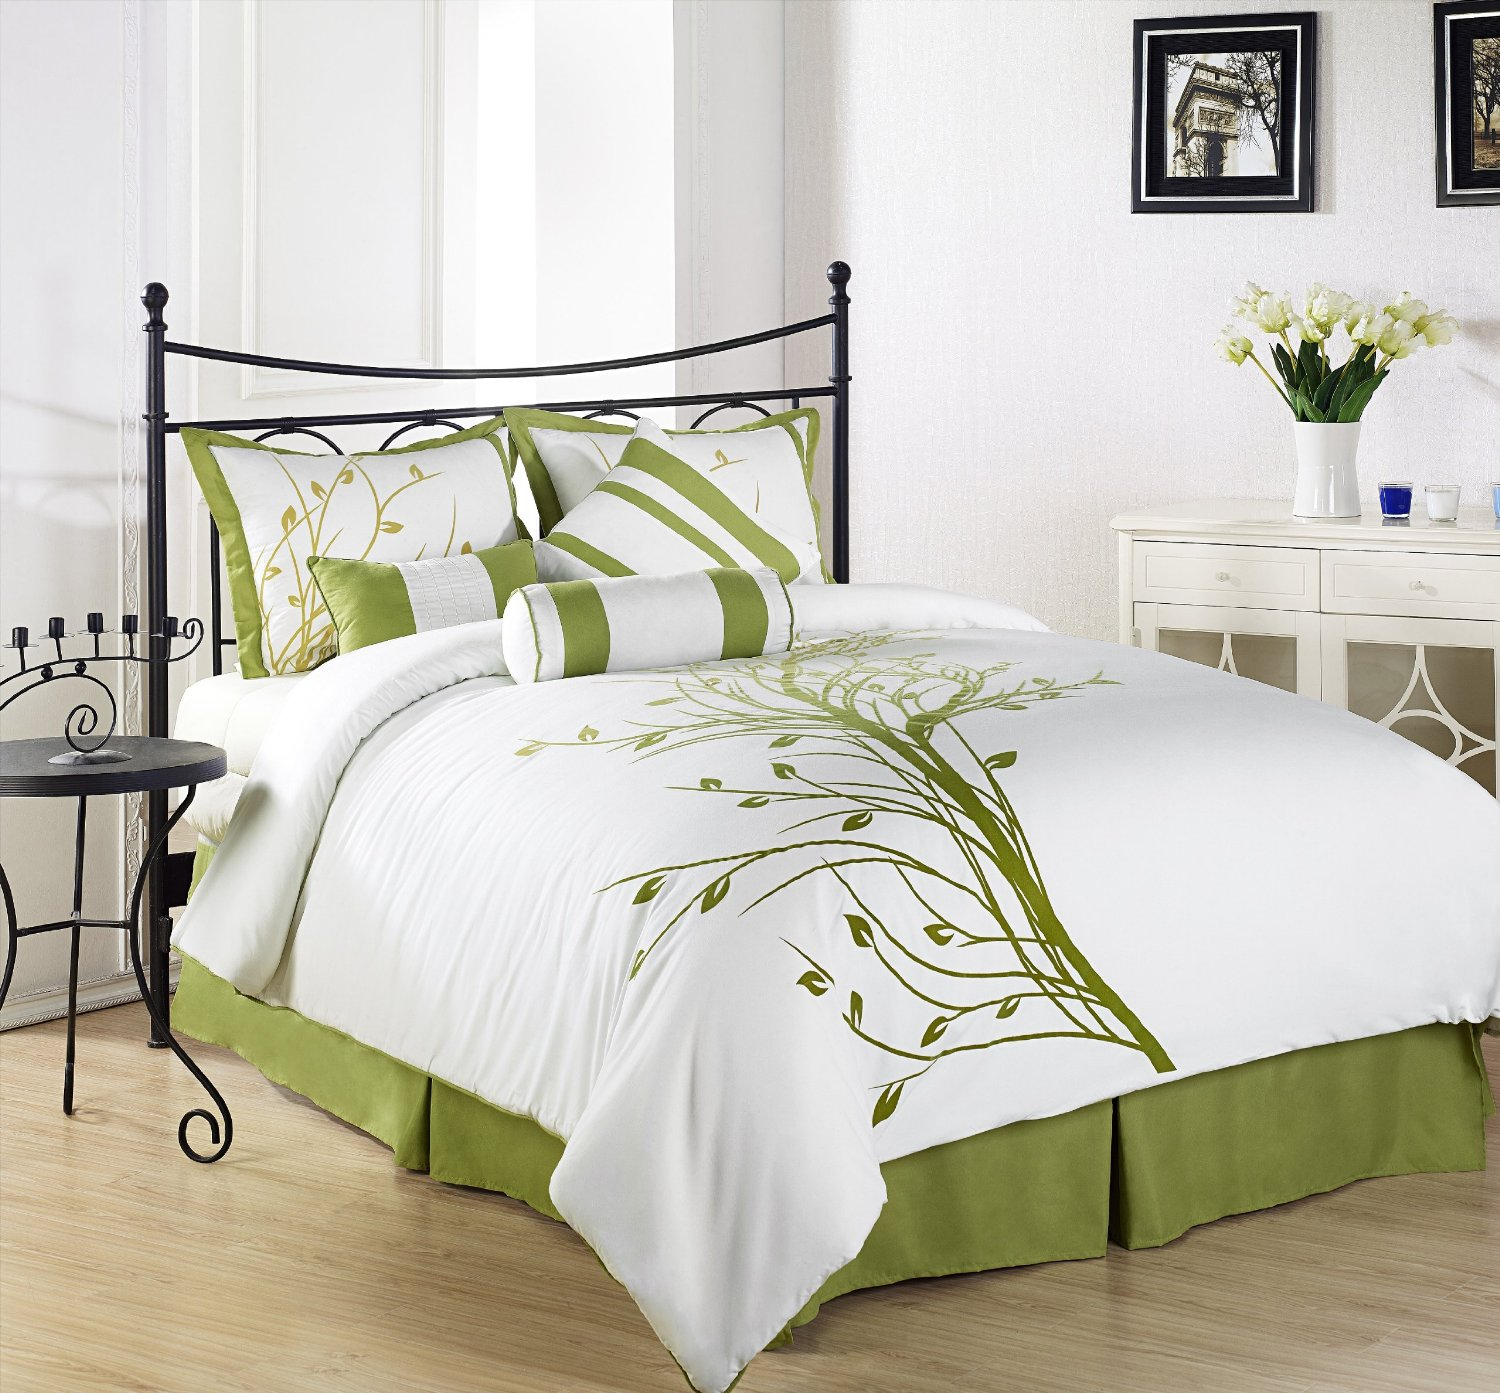 Image of: White and Green Bedding